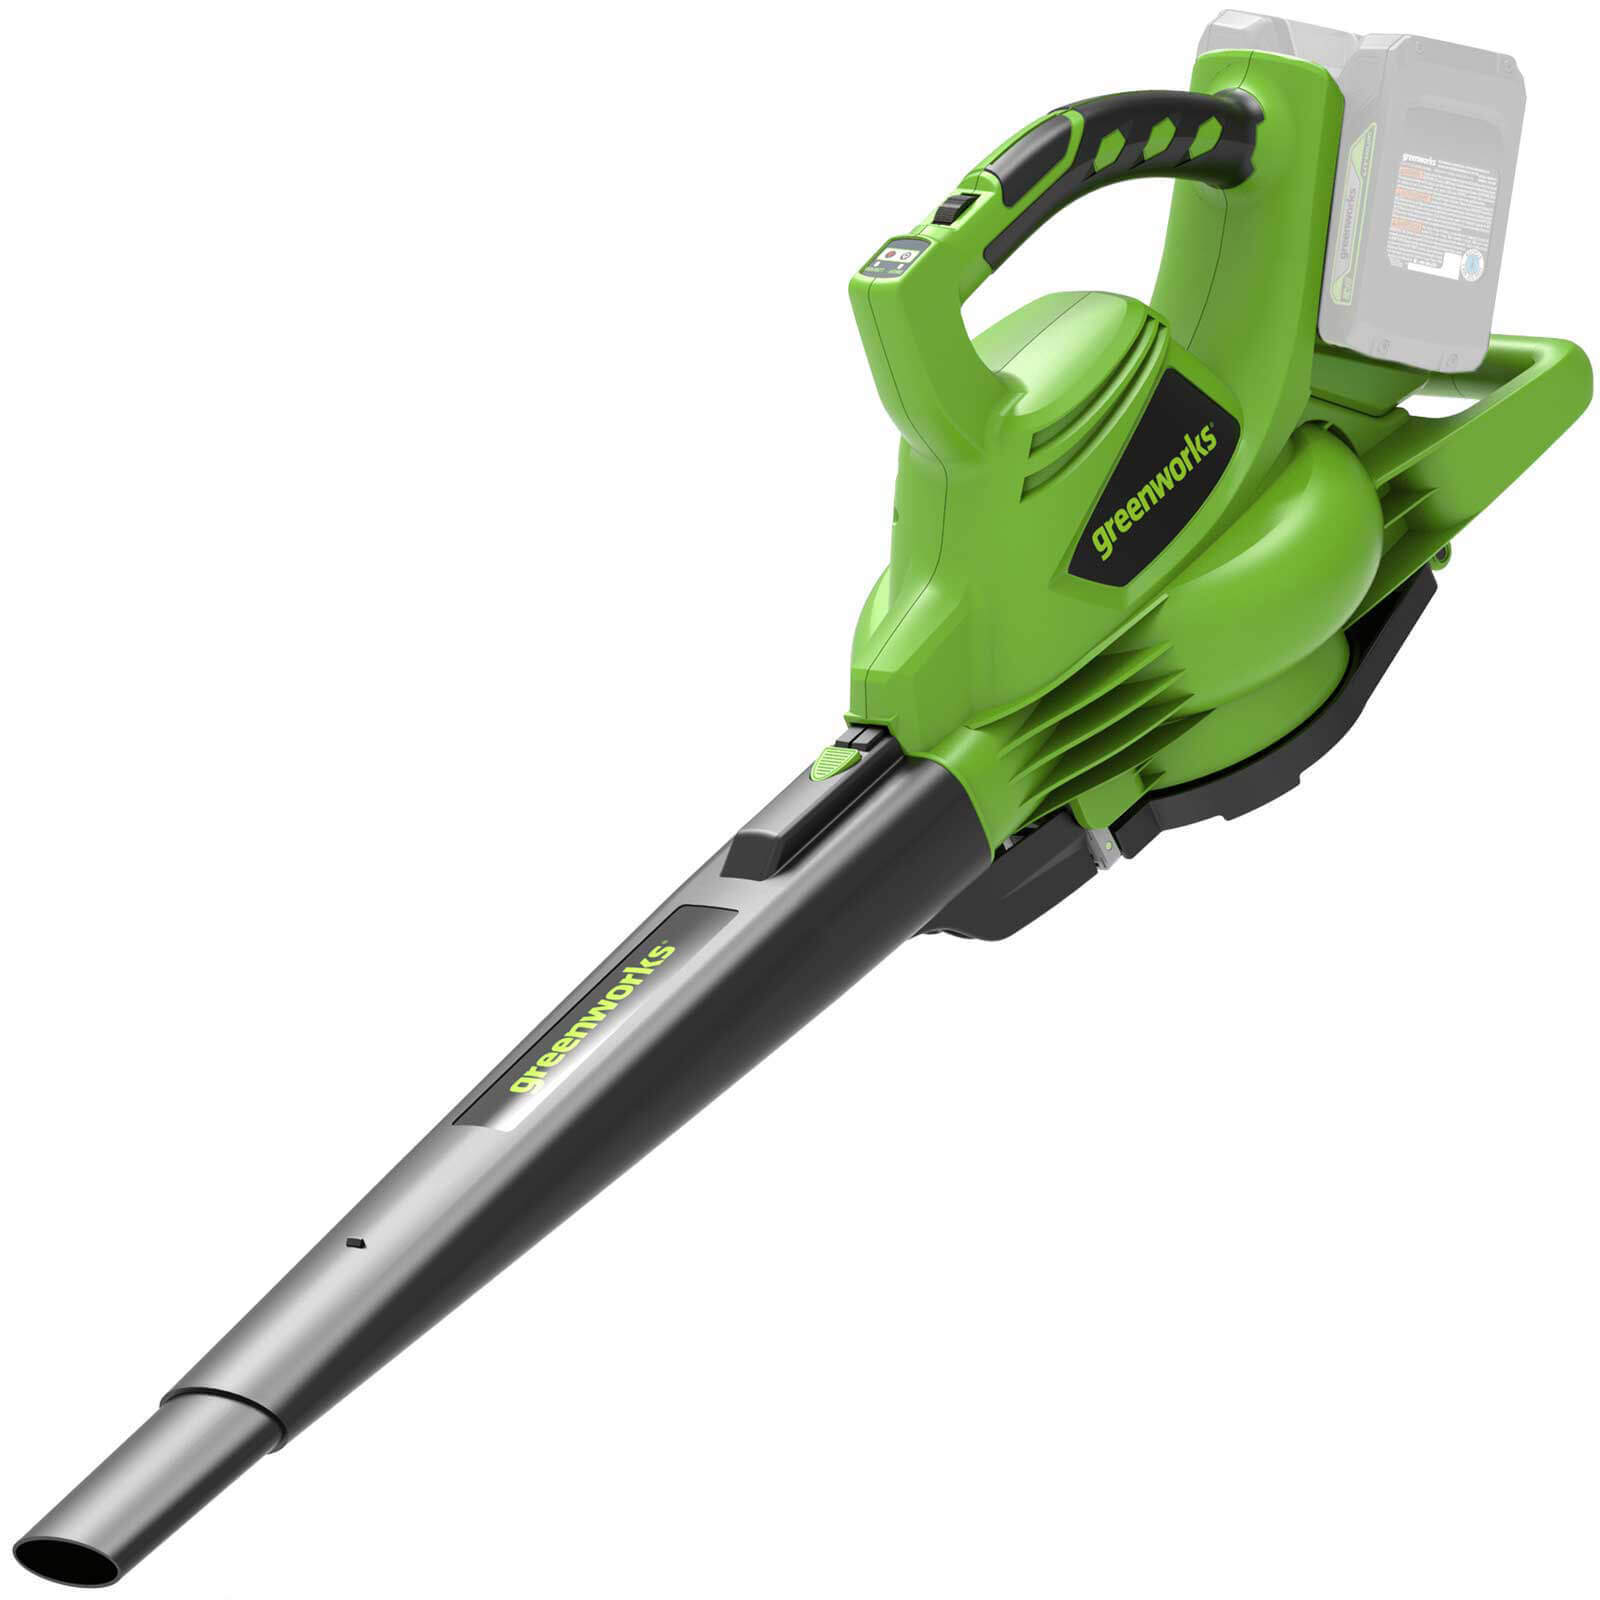 Greenworks GD24X2BV 48v Cordless Leaf Blower and Vacuum (Uses 2 x 24v) No Batteries No Charger